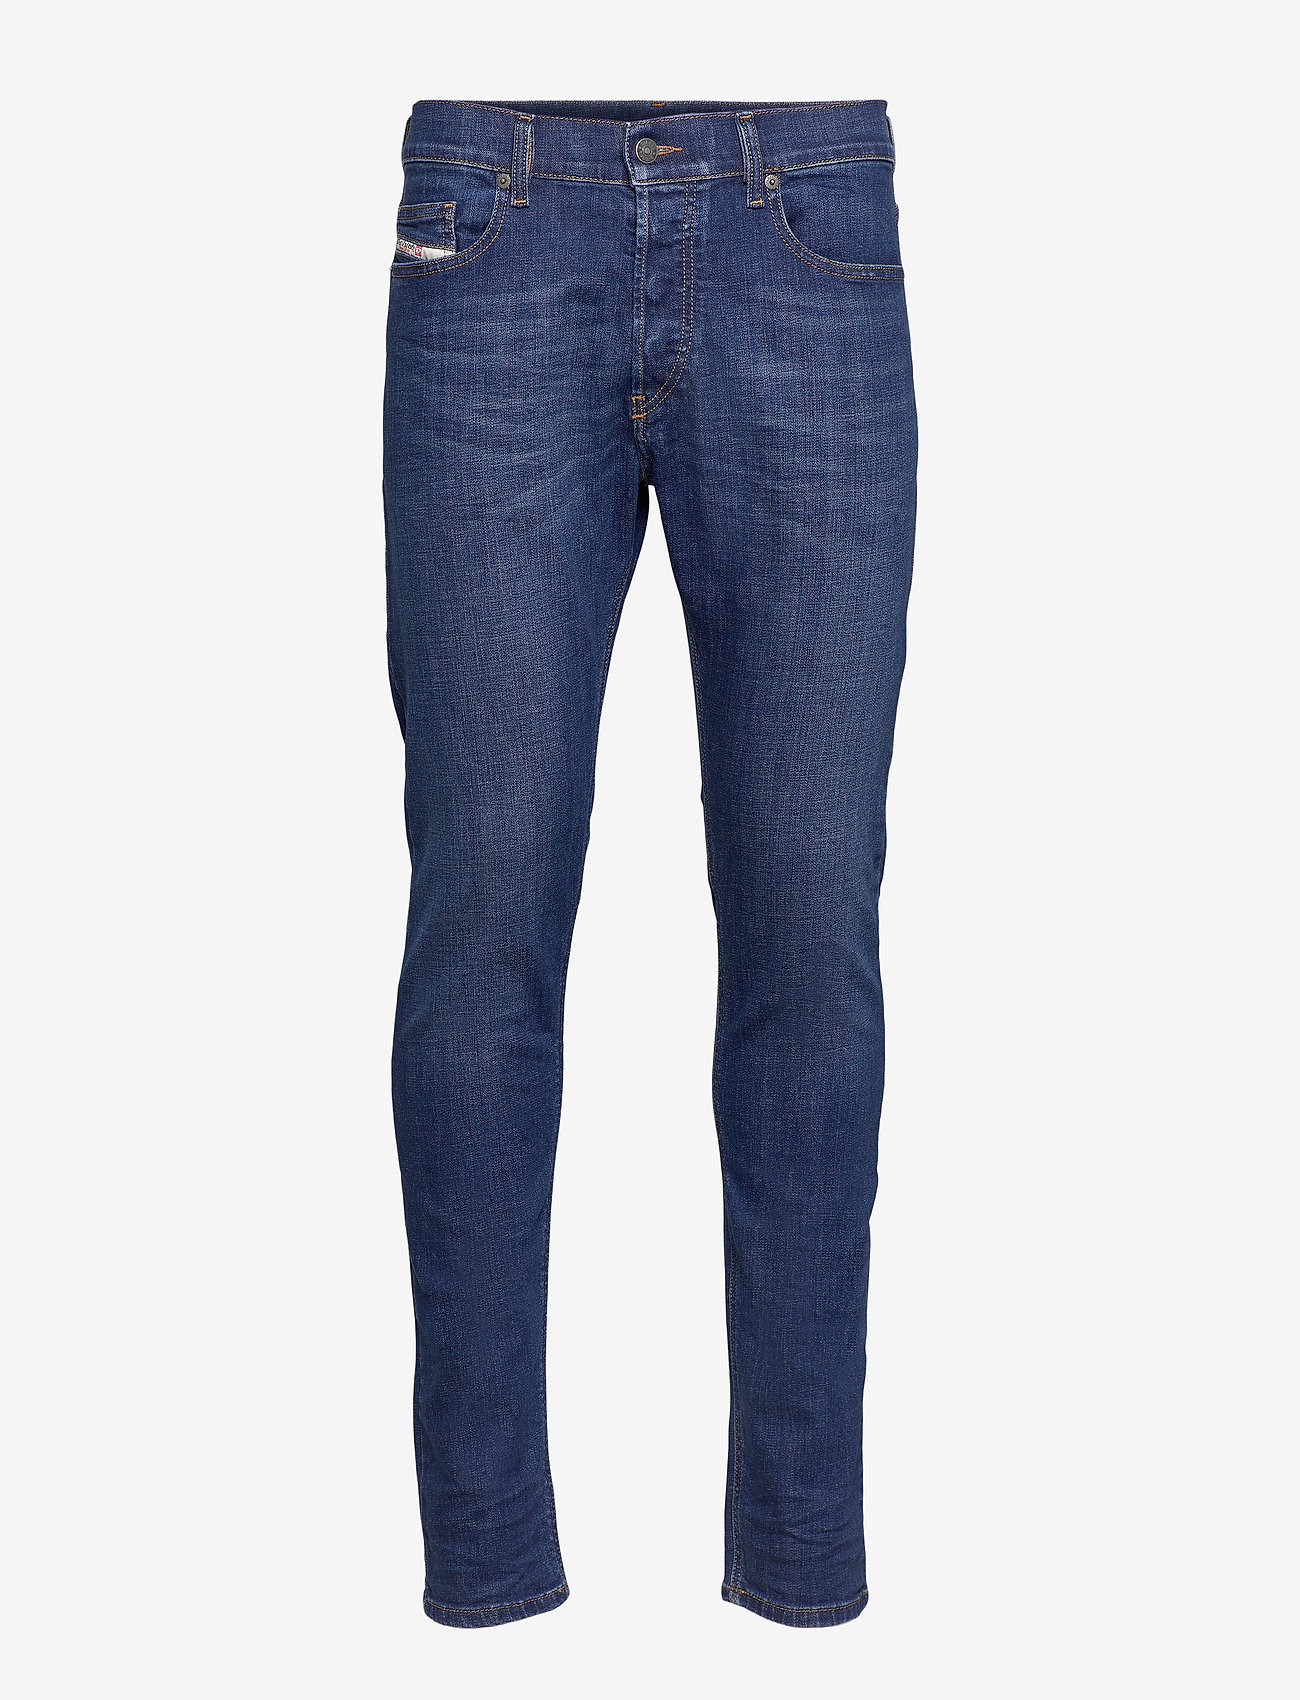 Diesel Men - D-LUSTER L.32 TROUSERS - slim jeans - denim - 0